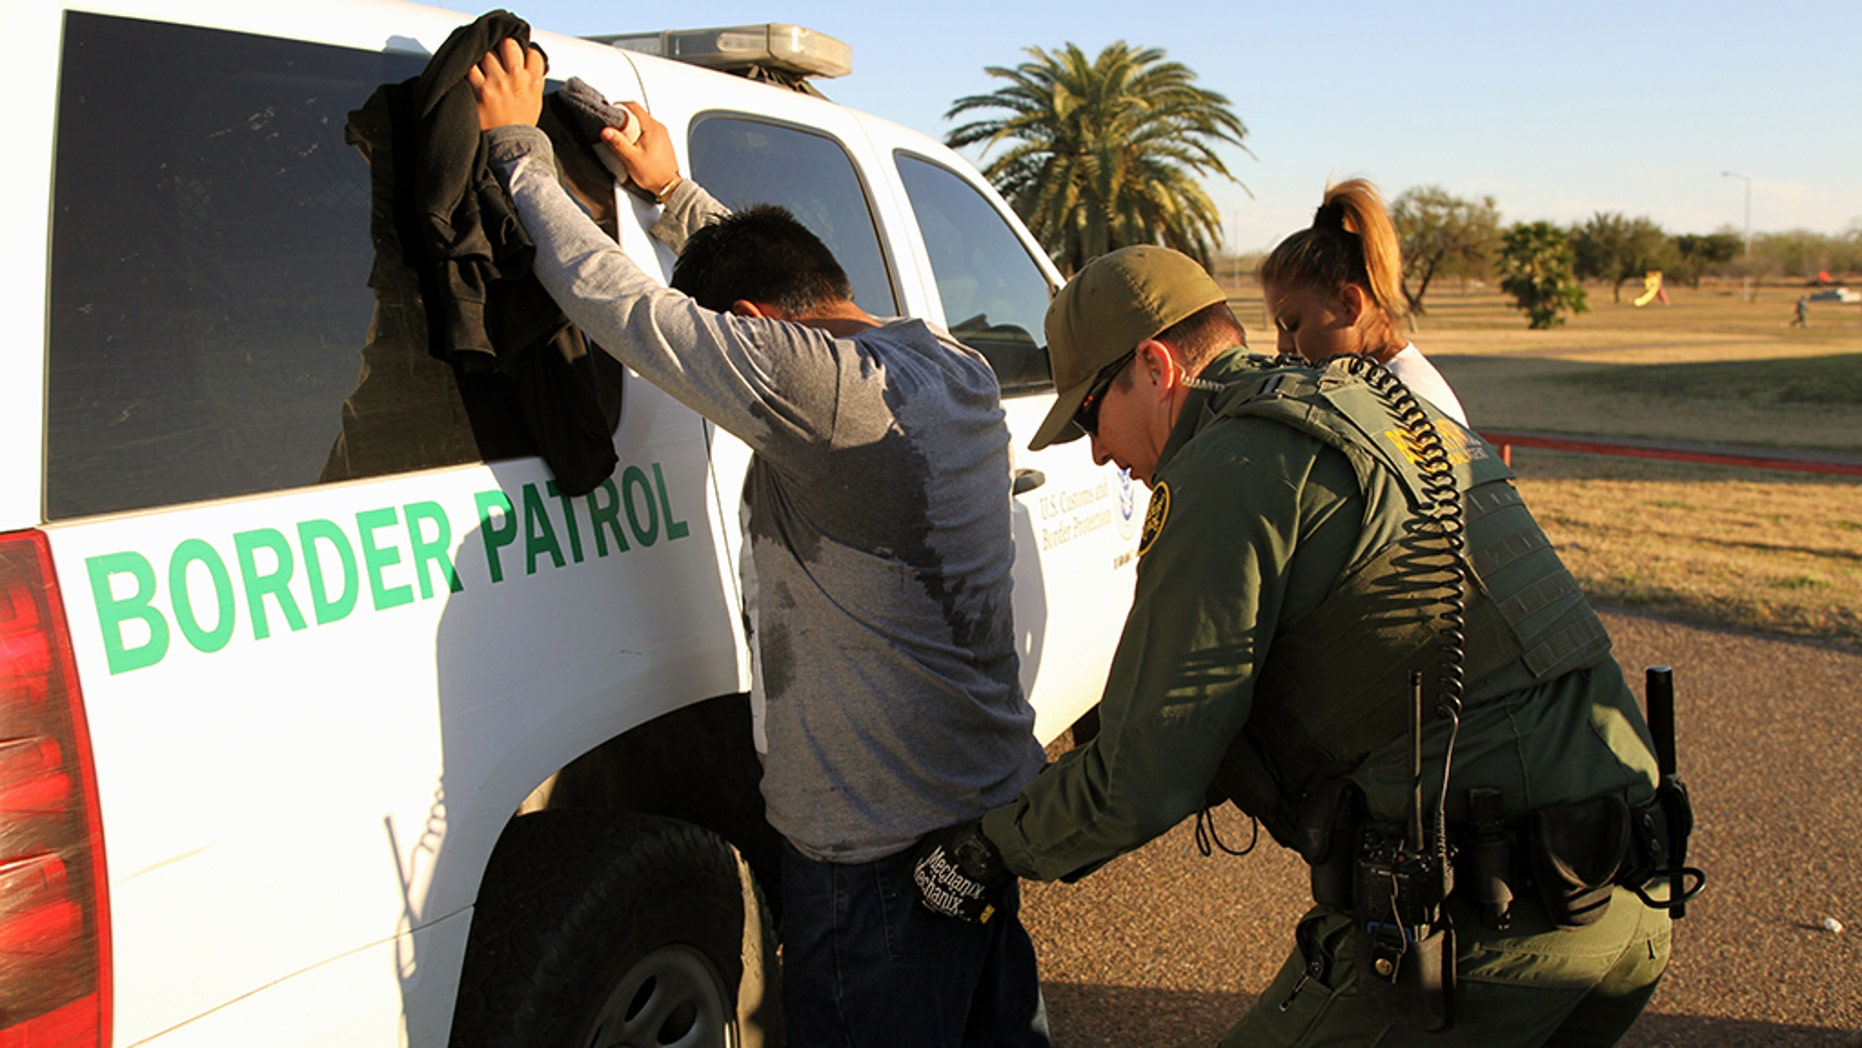 U.S. southern border officials said Wednesday that the number of people illegally trying to enter the U.S. from Mexico skyrocketed in May compared to one year ago.